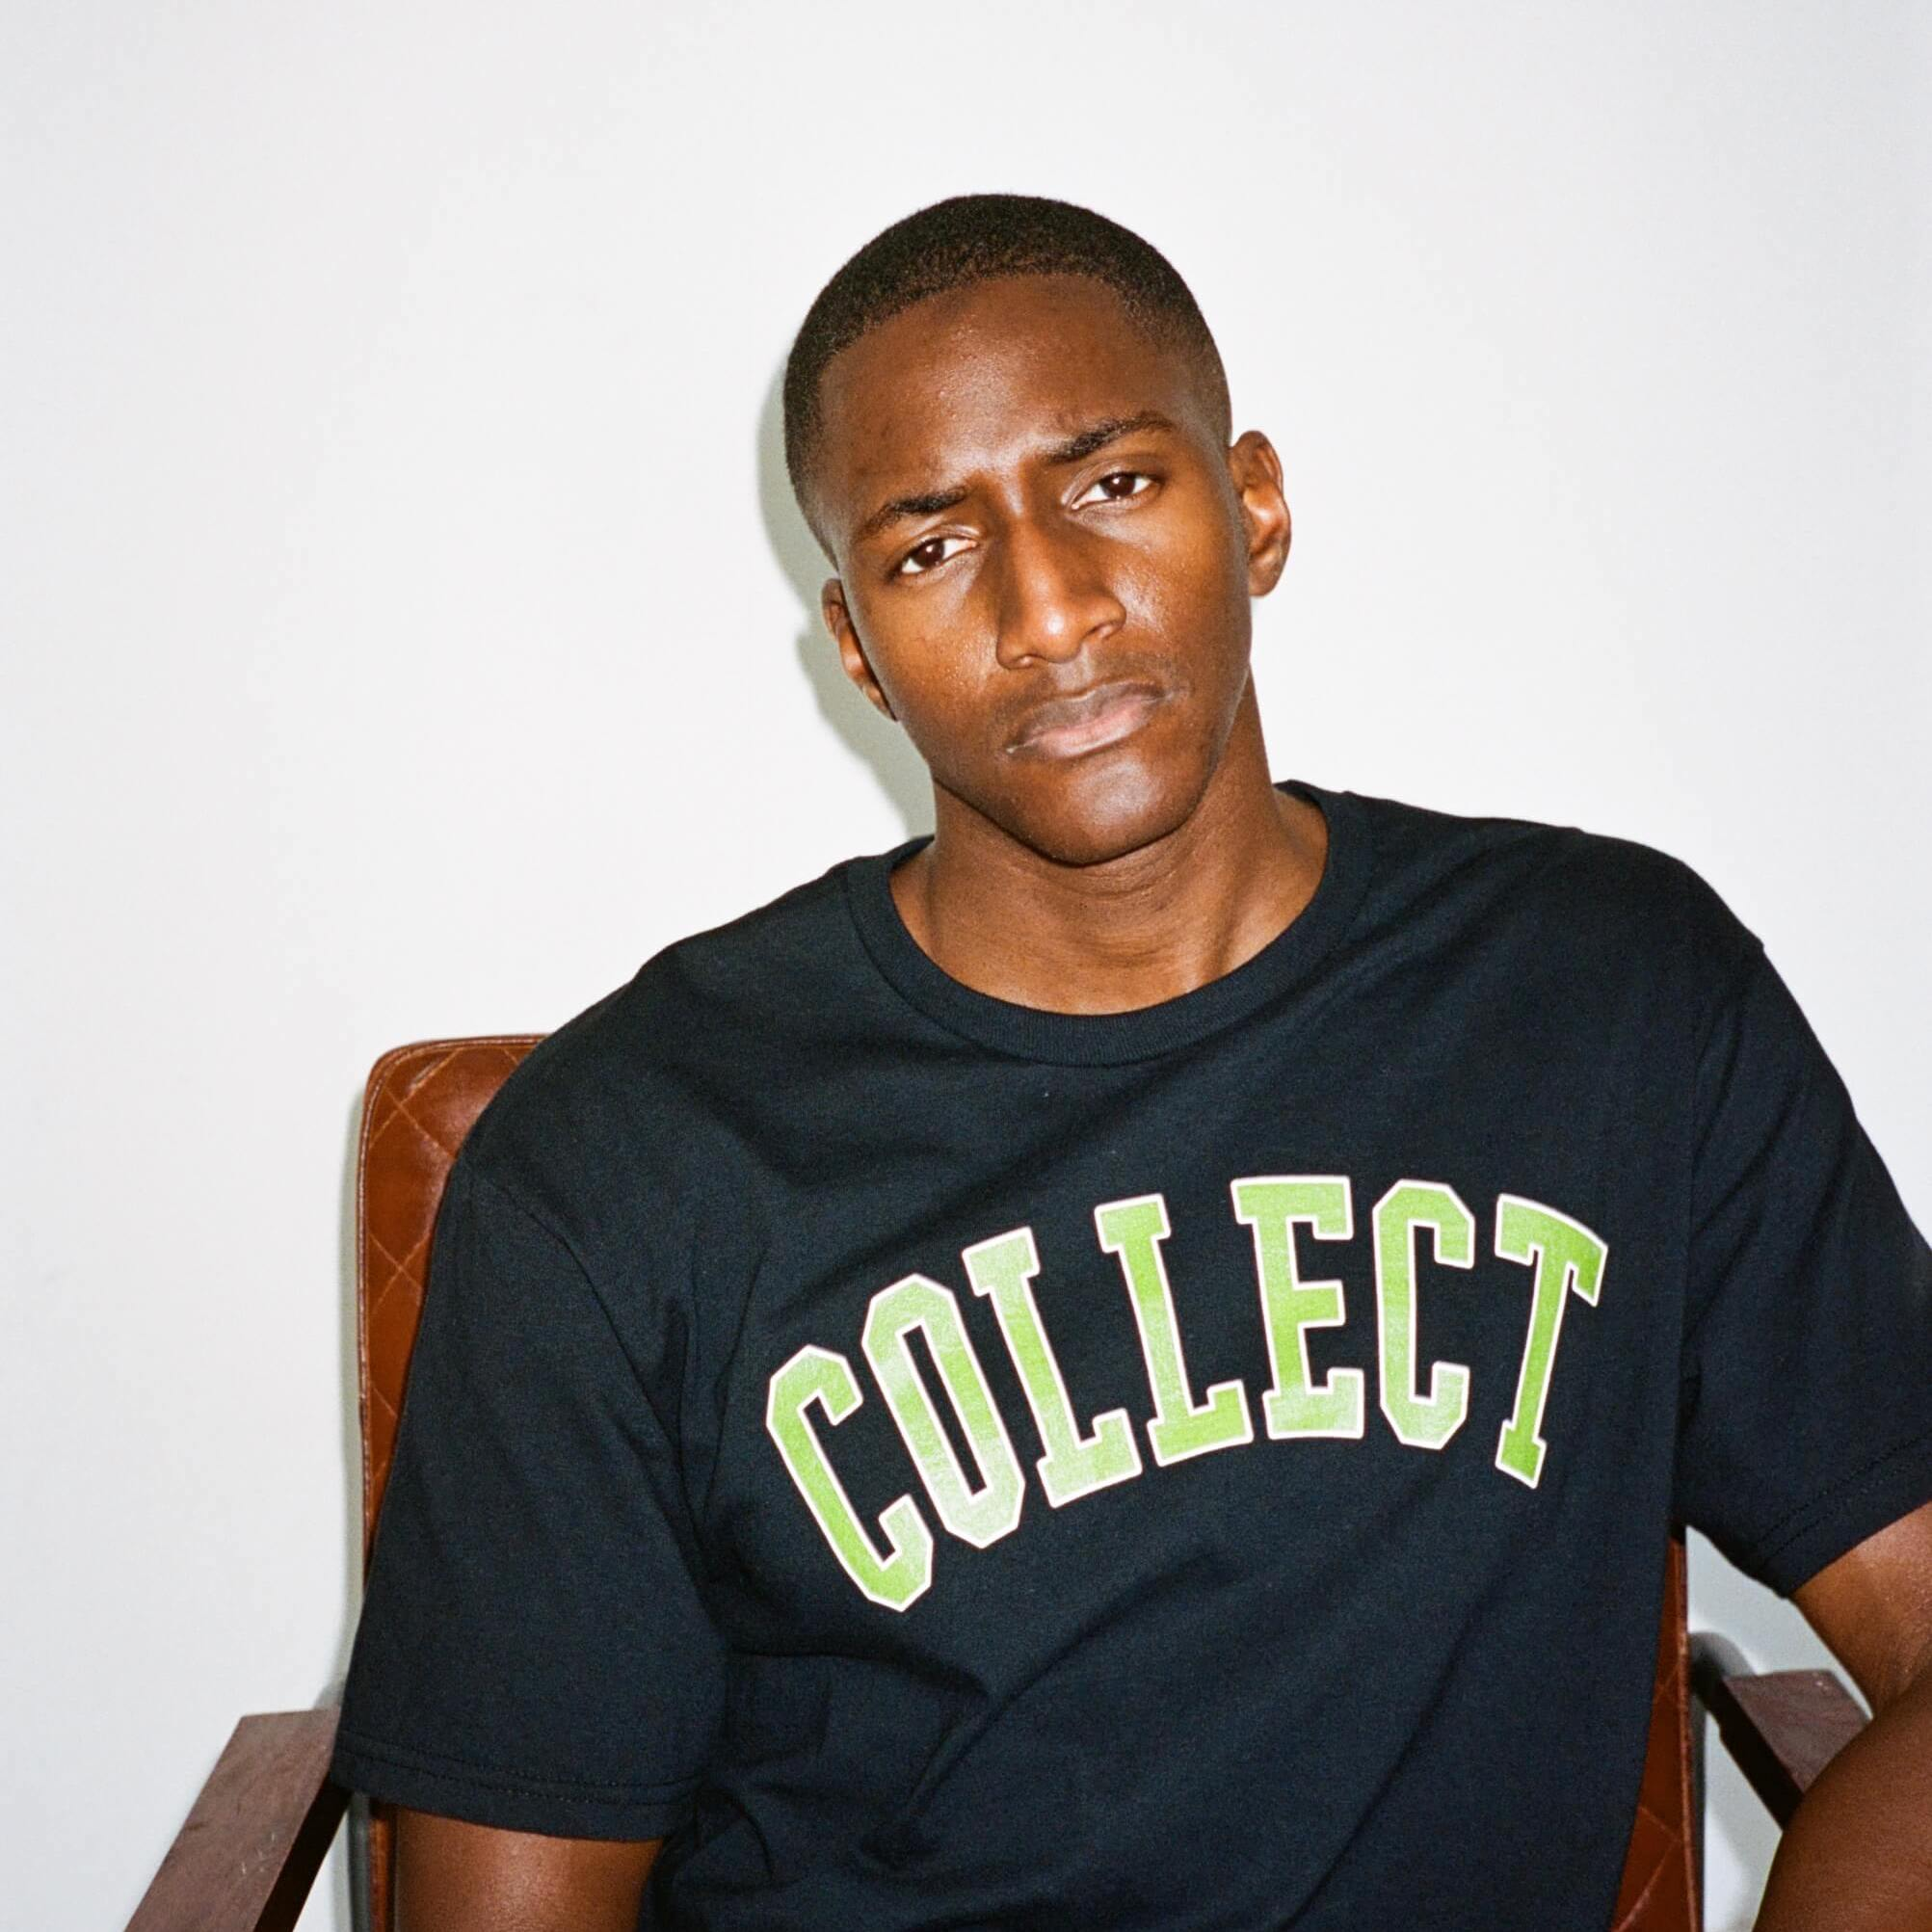 Collect - Summer 21 Collection Preview and Interview